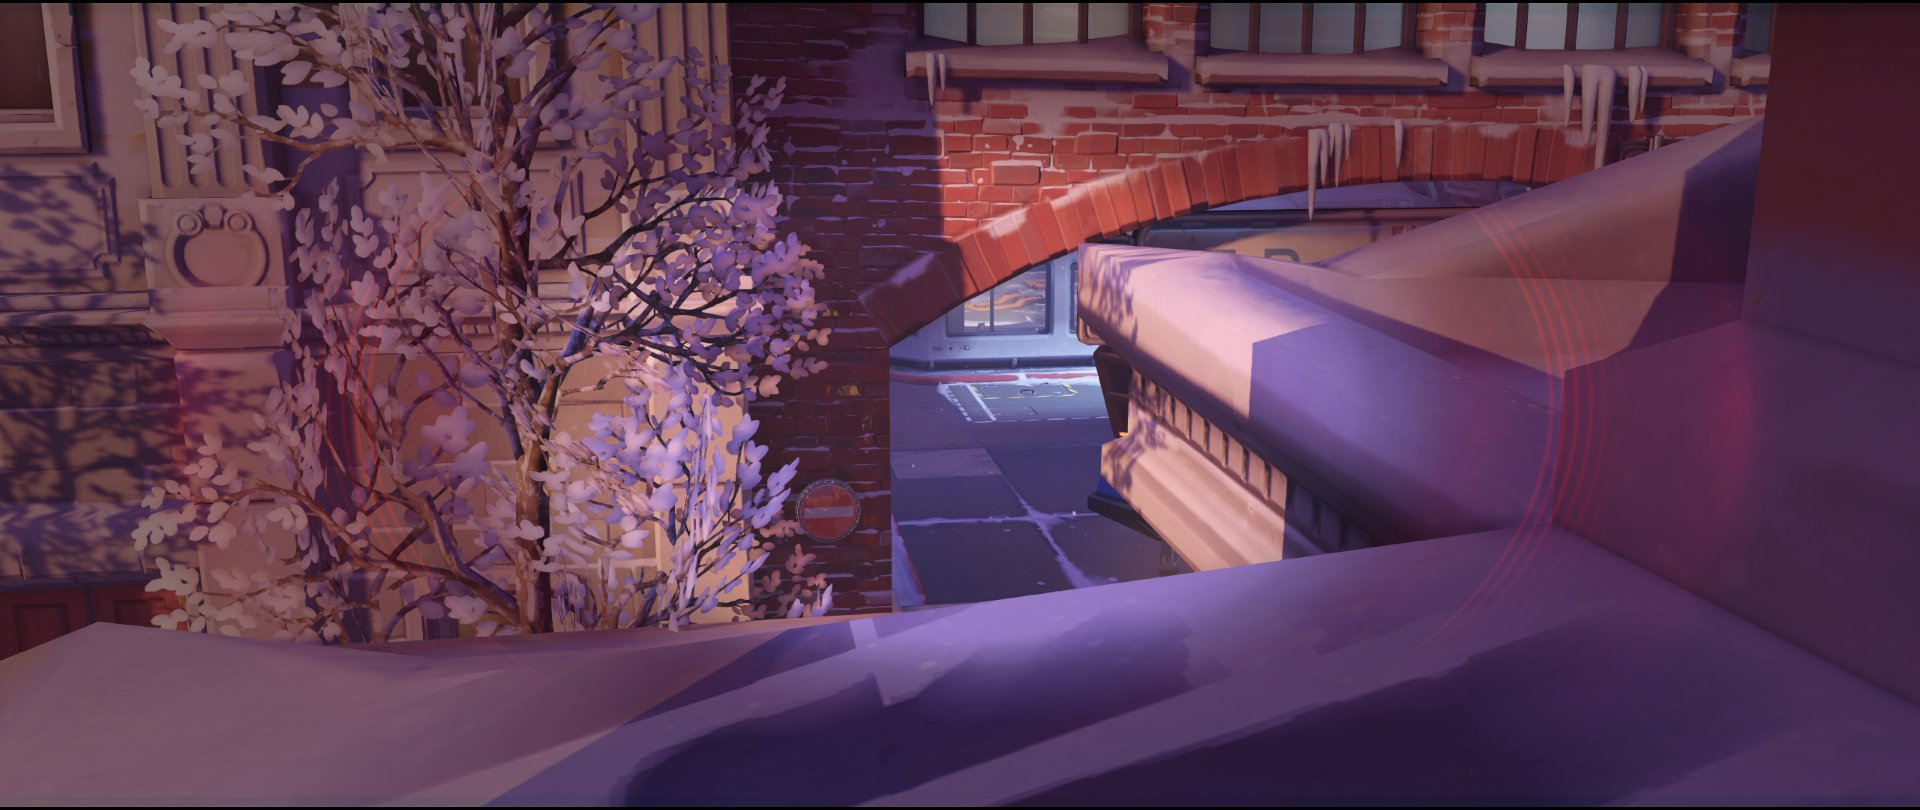 Shrine second left view attack sniping spot Widowmaker Volskaya Industries Overwatch.jpg